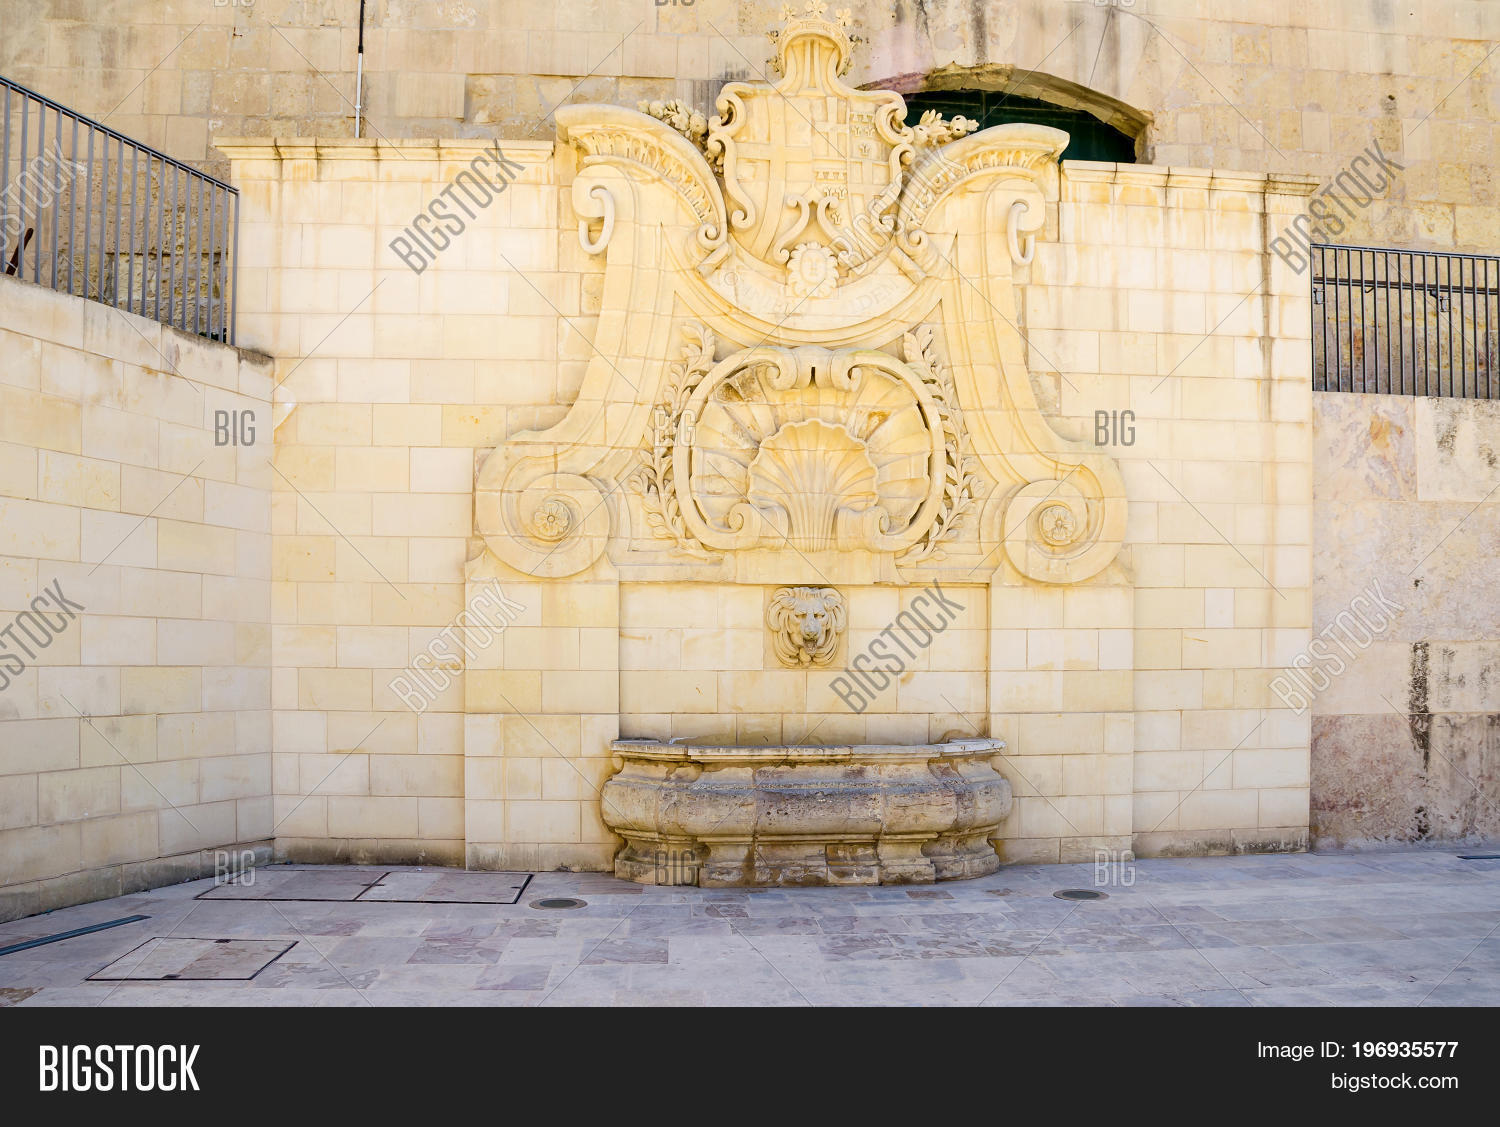 Baroque Water Well Image & Photo (Free Trial) | Bigstock